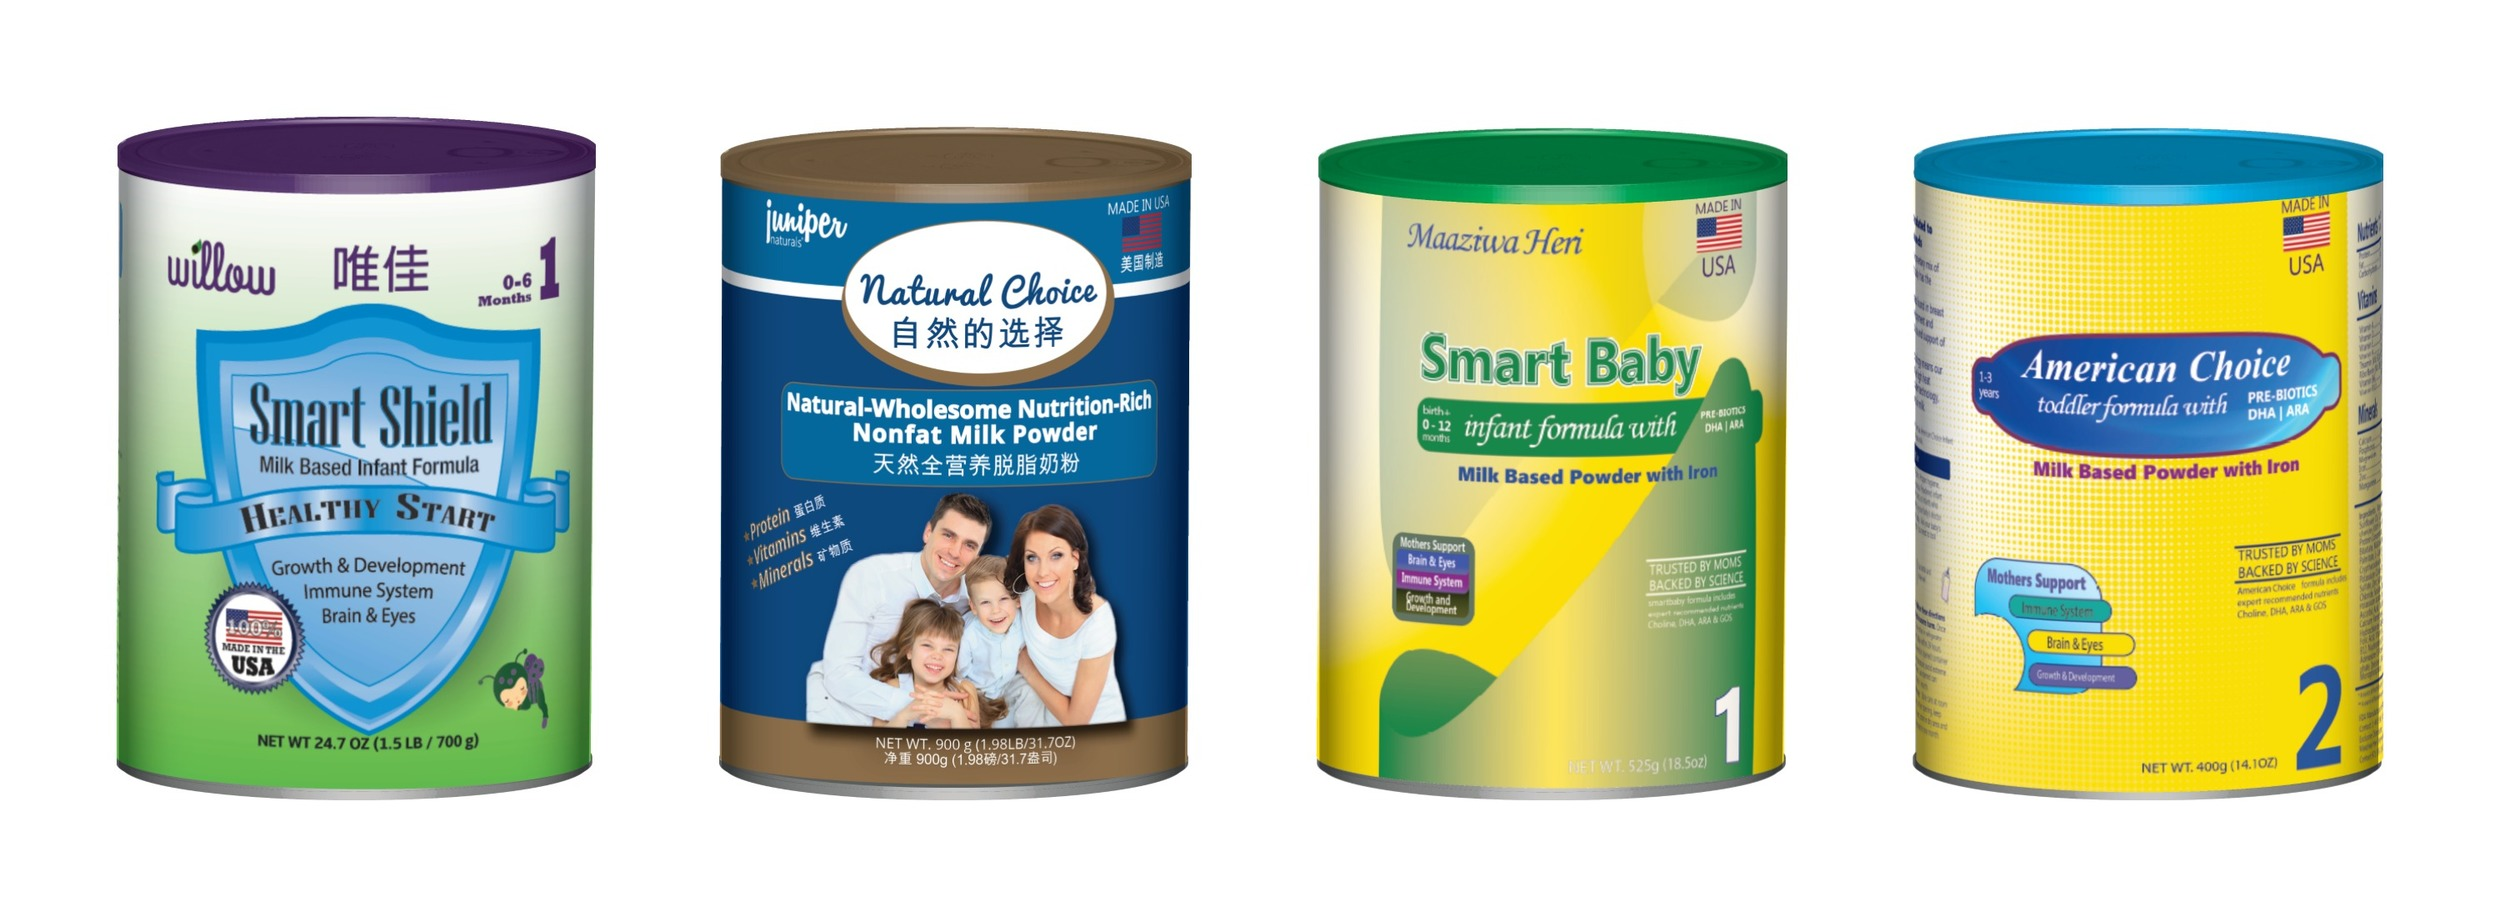 Private label infant formula cans manufactured by NPRI